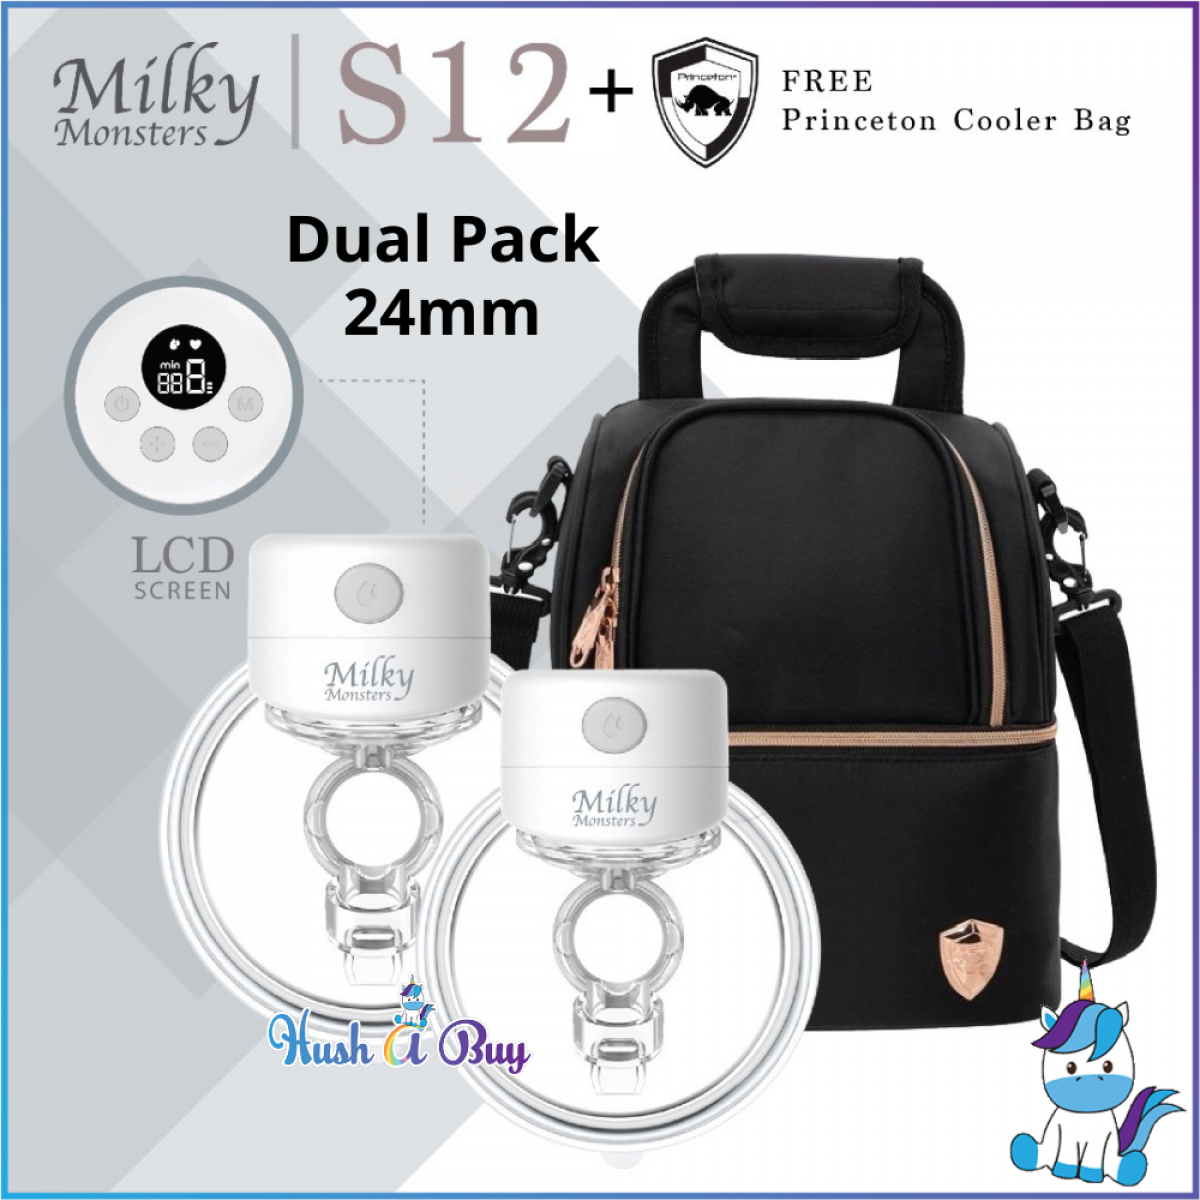 Milky Monsters Wearable Breast Pump S12 with LED Screen - Single/Double - 24mm/27mm (1 Year Warranty)